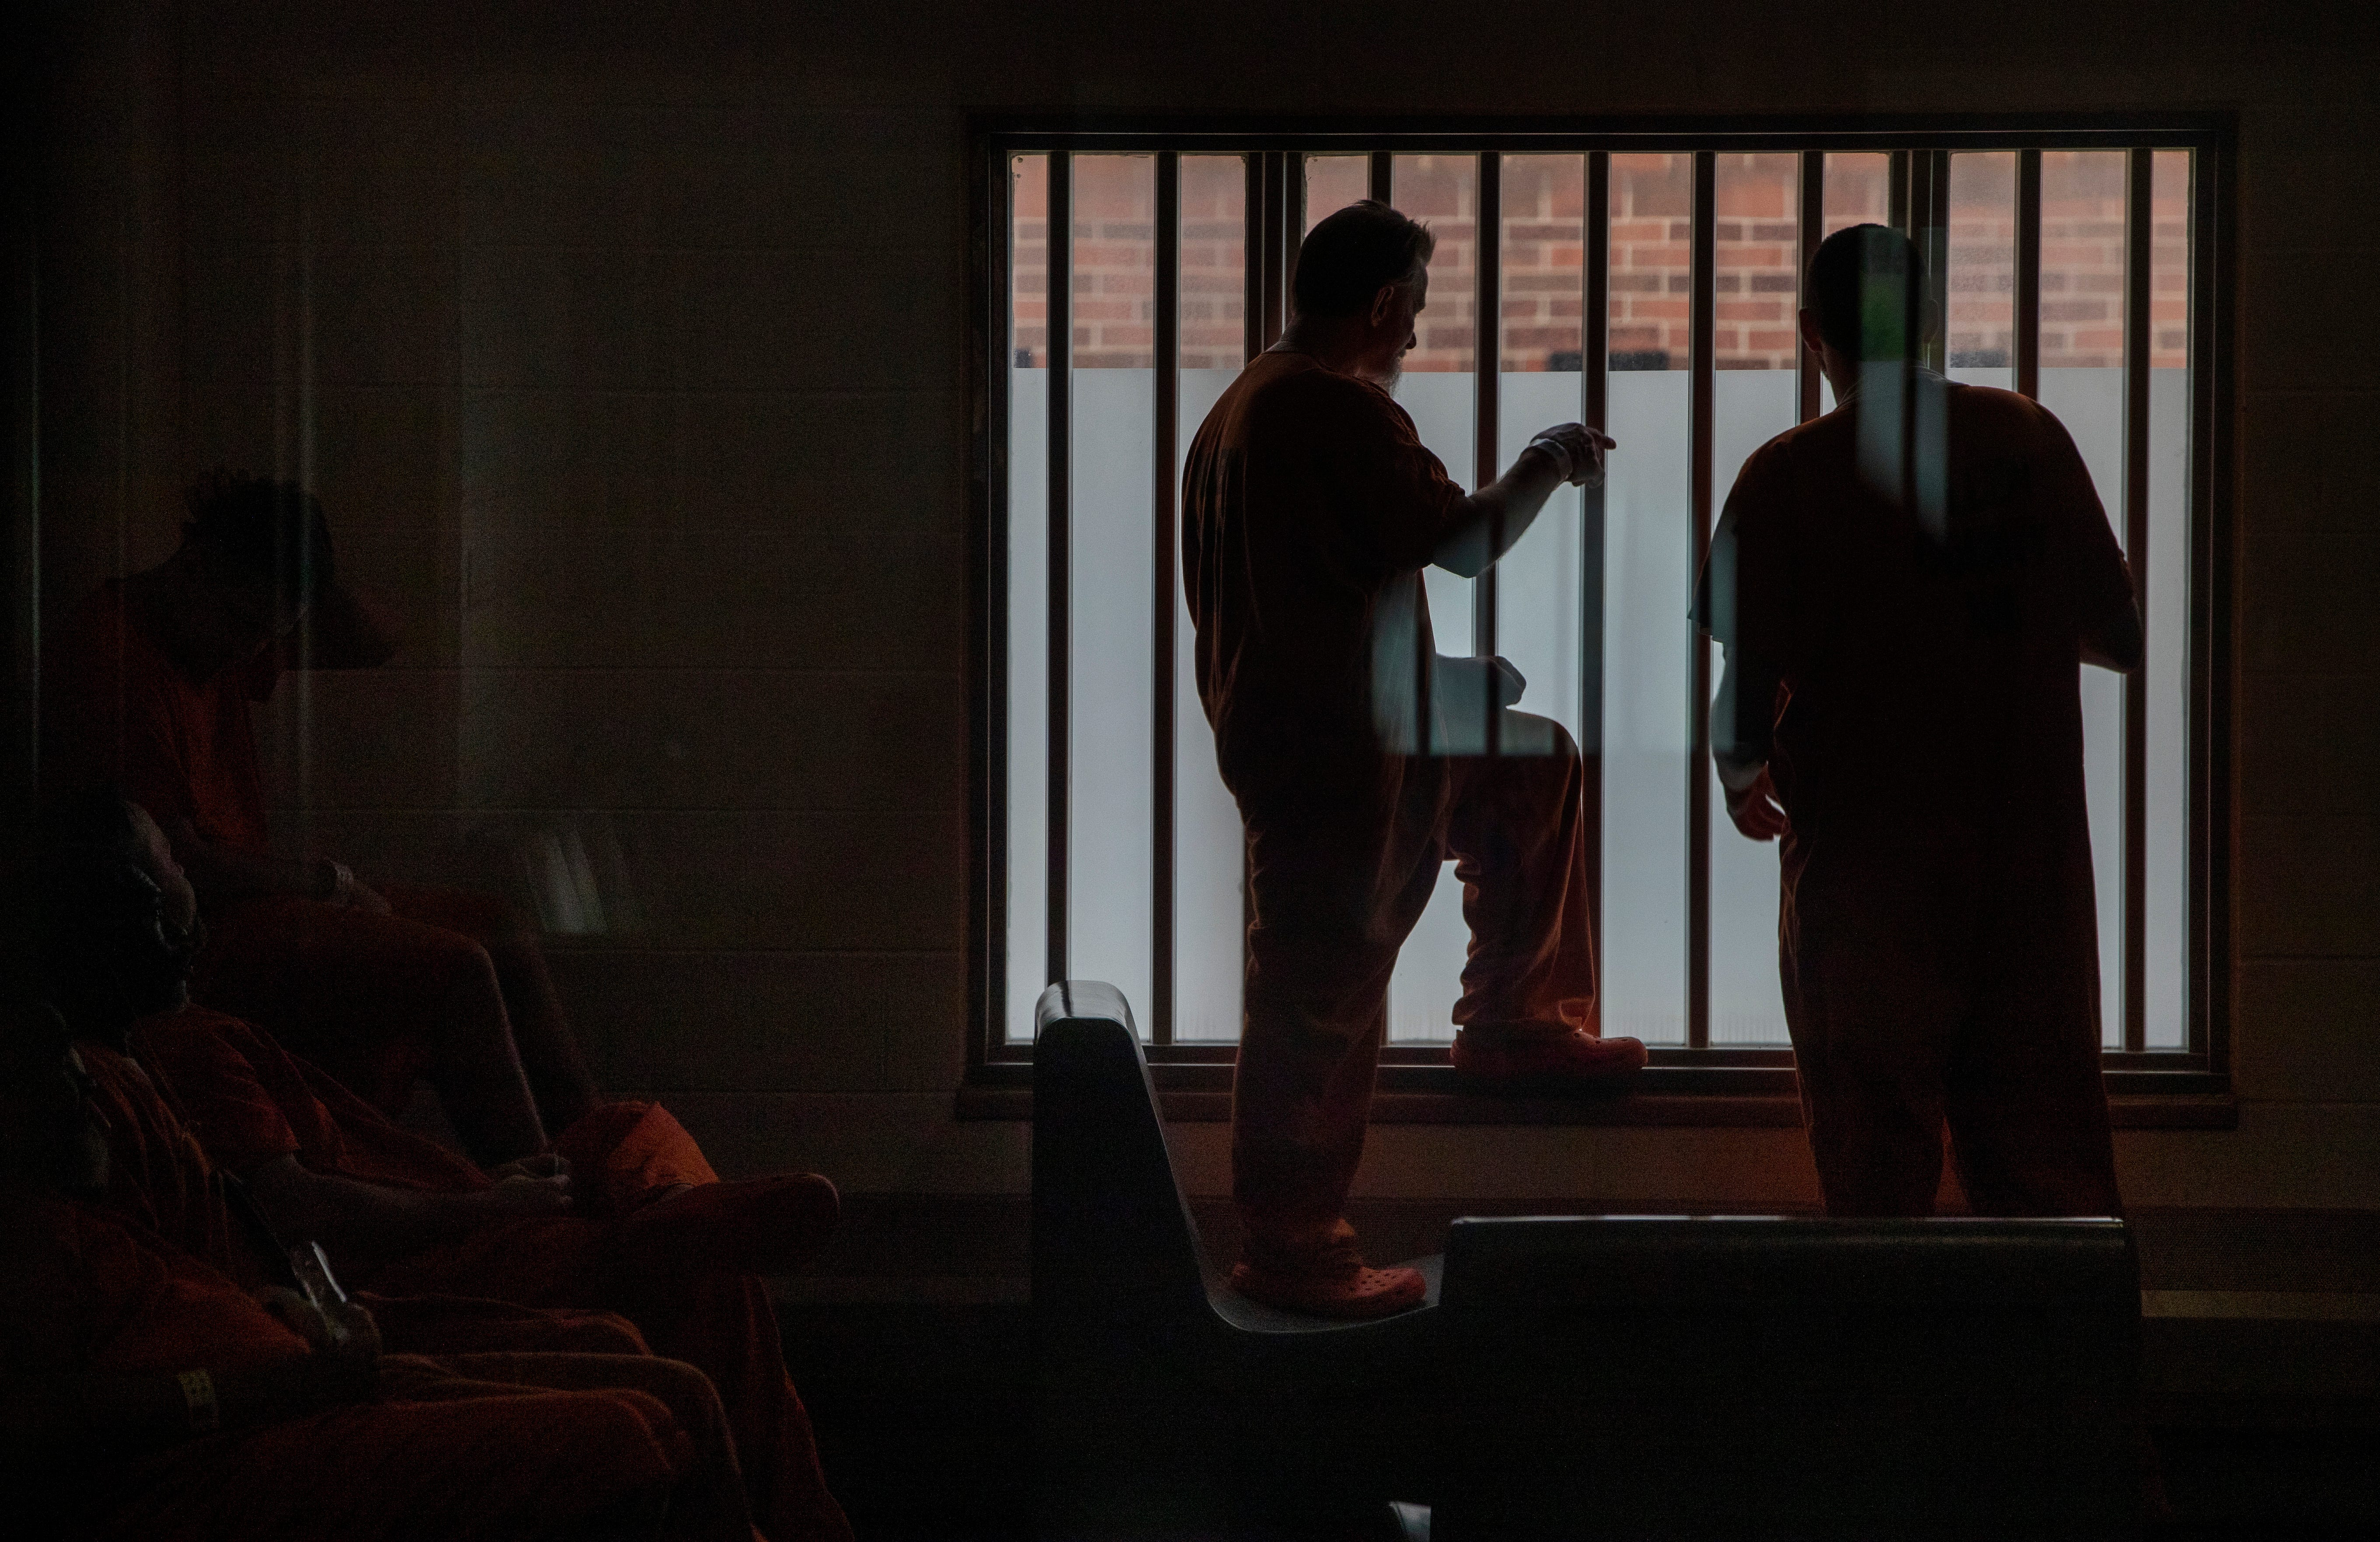 Detainees stand near a window Thursday, June 24, 2021, at the Allen County Jail in downtown Ft. Wayne, Ind.